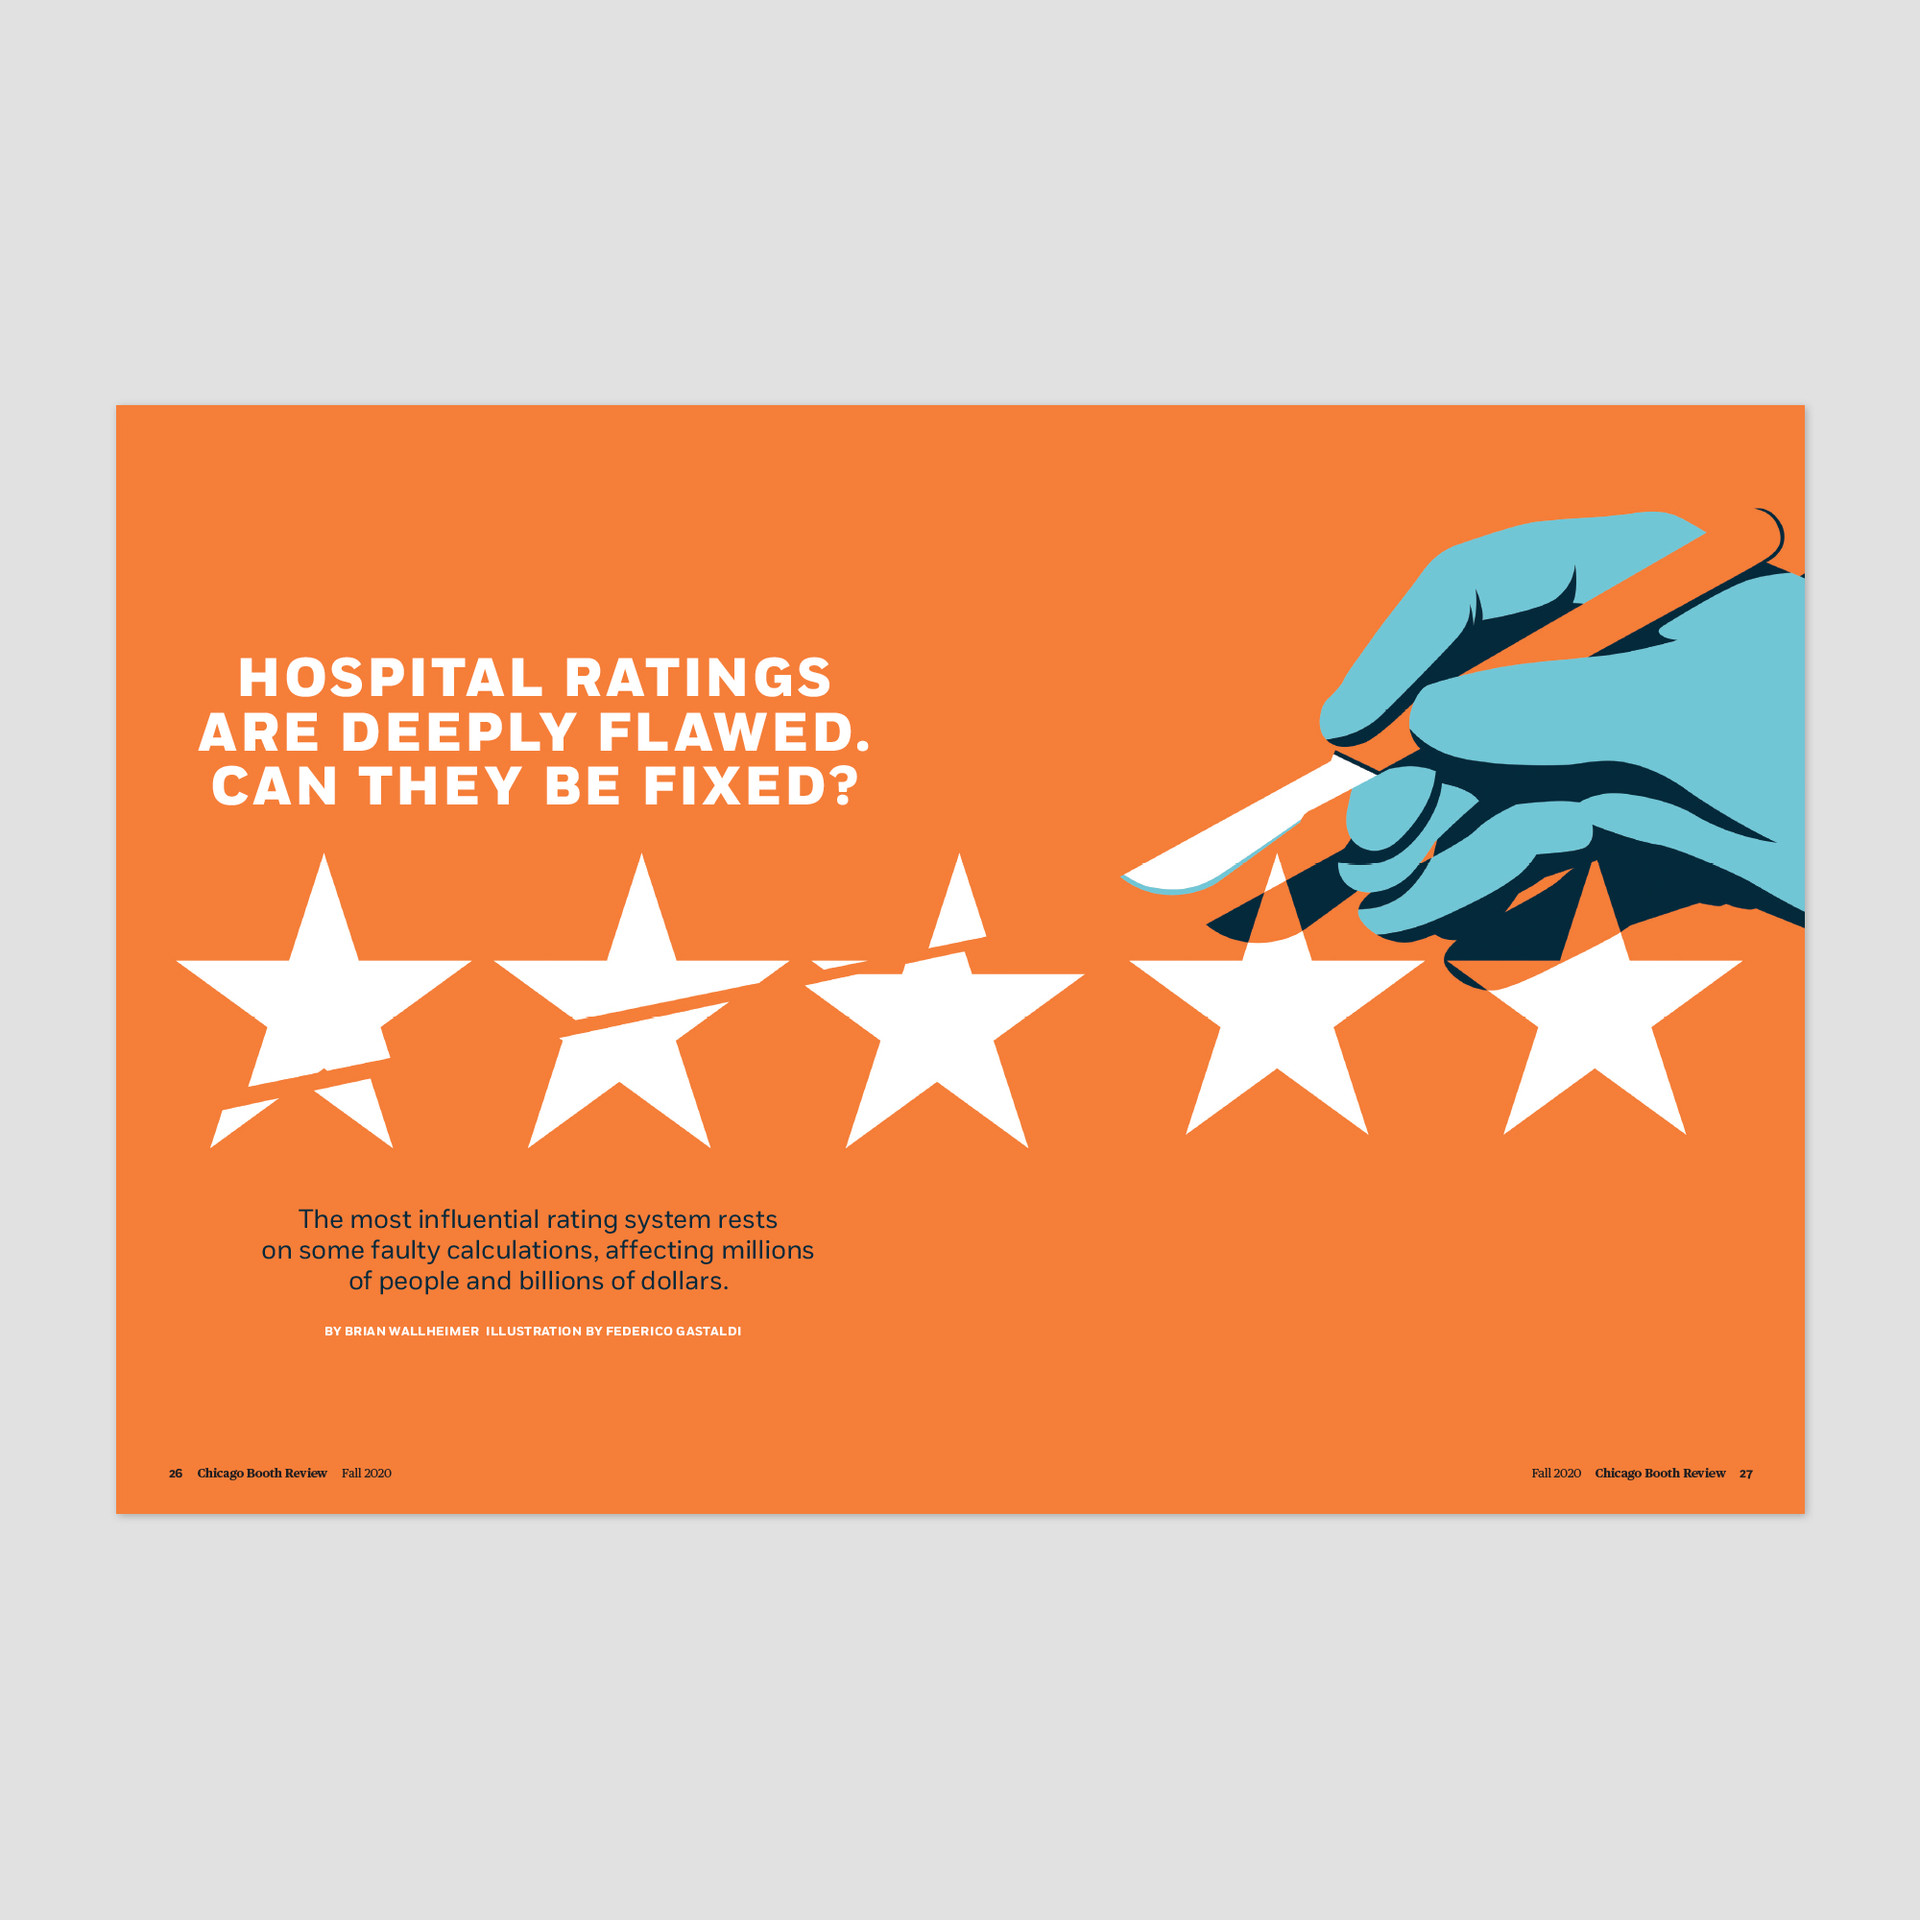 Hospital ratings